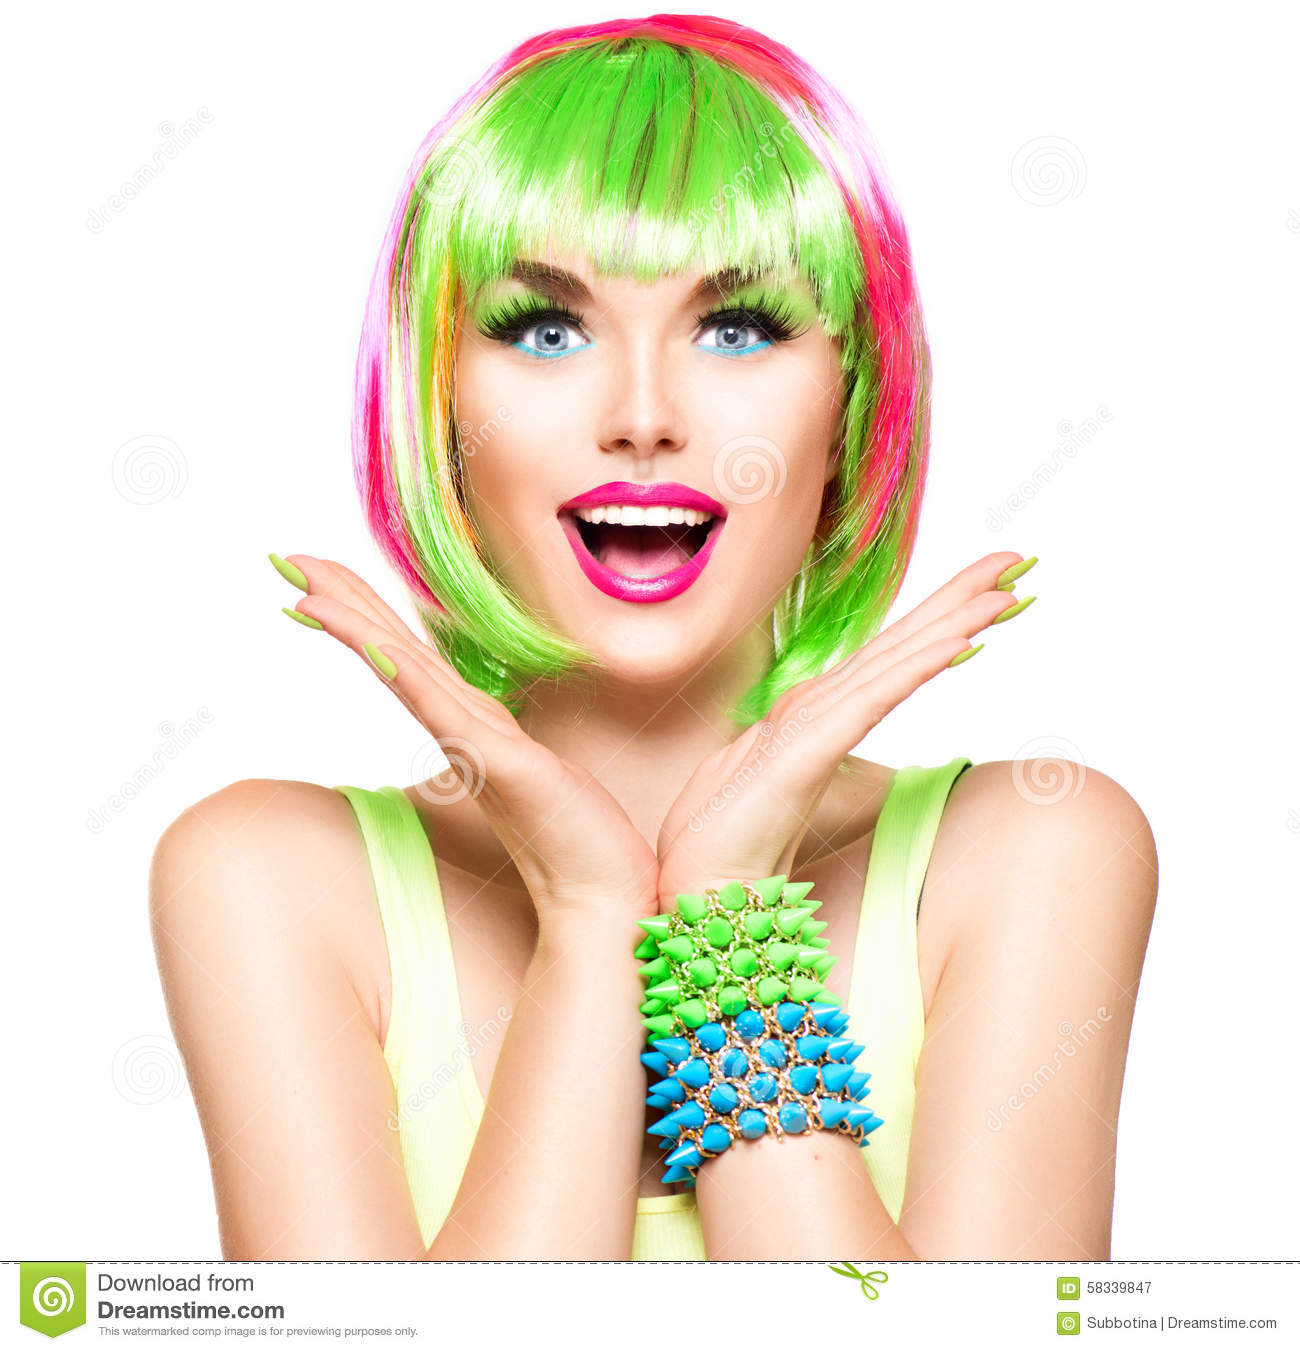 Surprised beauty model girl with colorful dyed hair